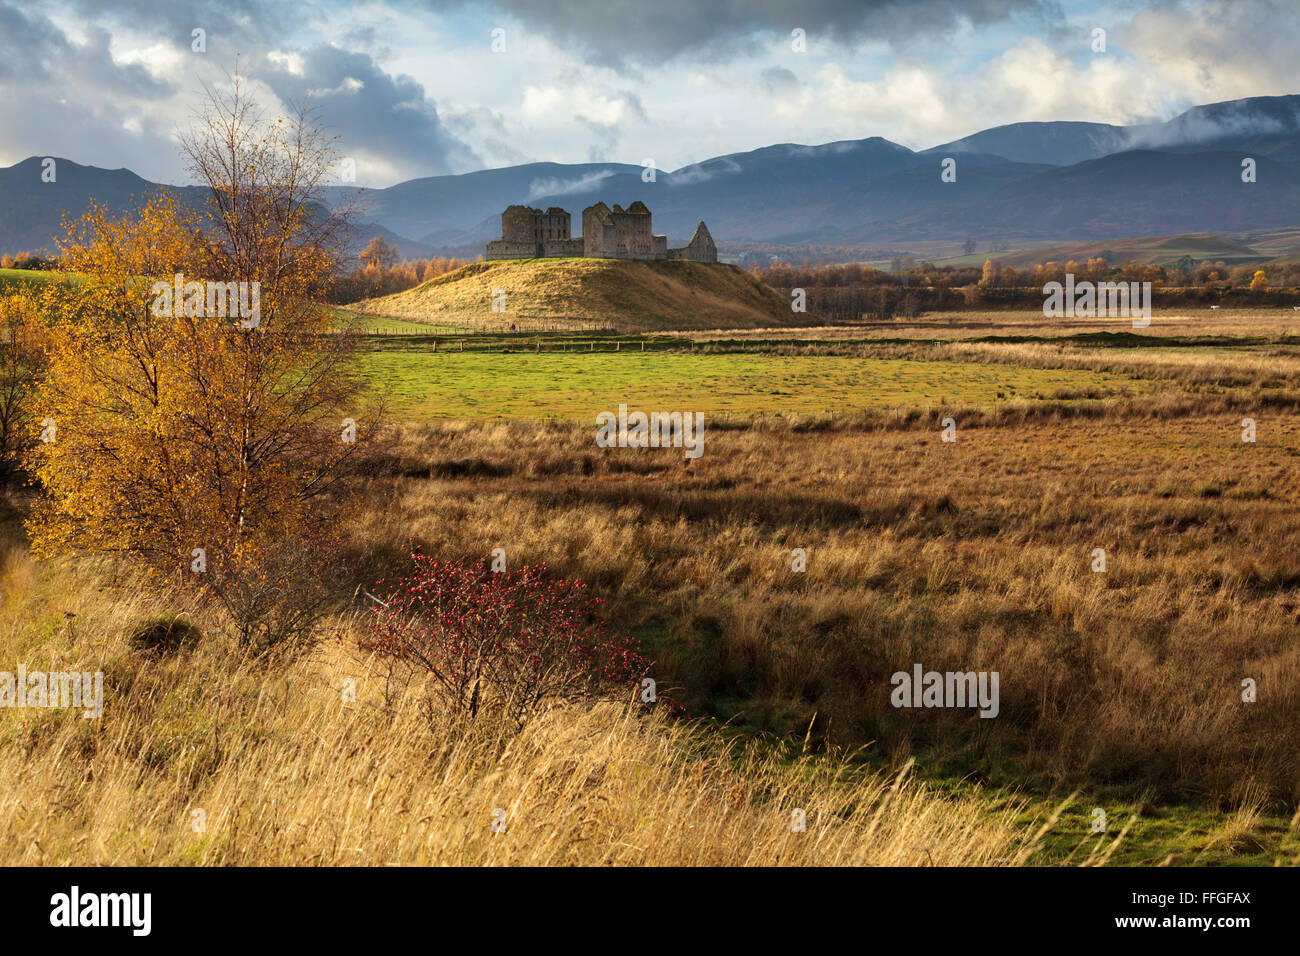 Ruthven Barracks near Kingussie in the Cairngroms National Park, captured during a brief spell of sunlight. - Stock Image